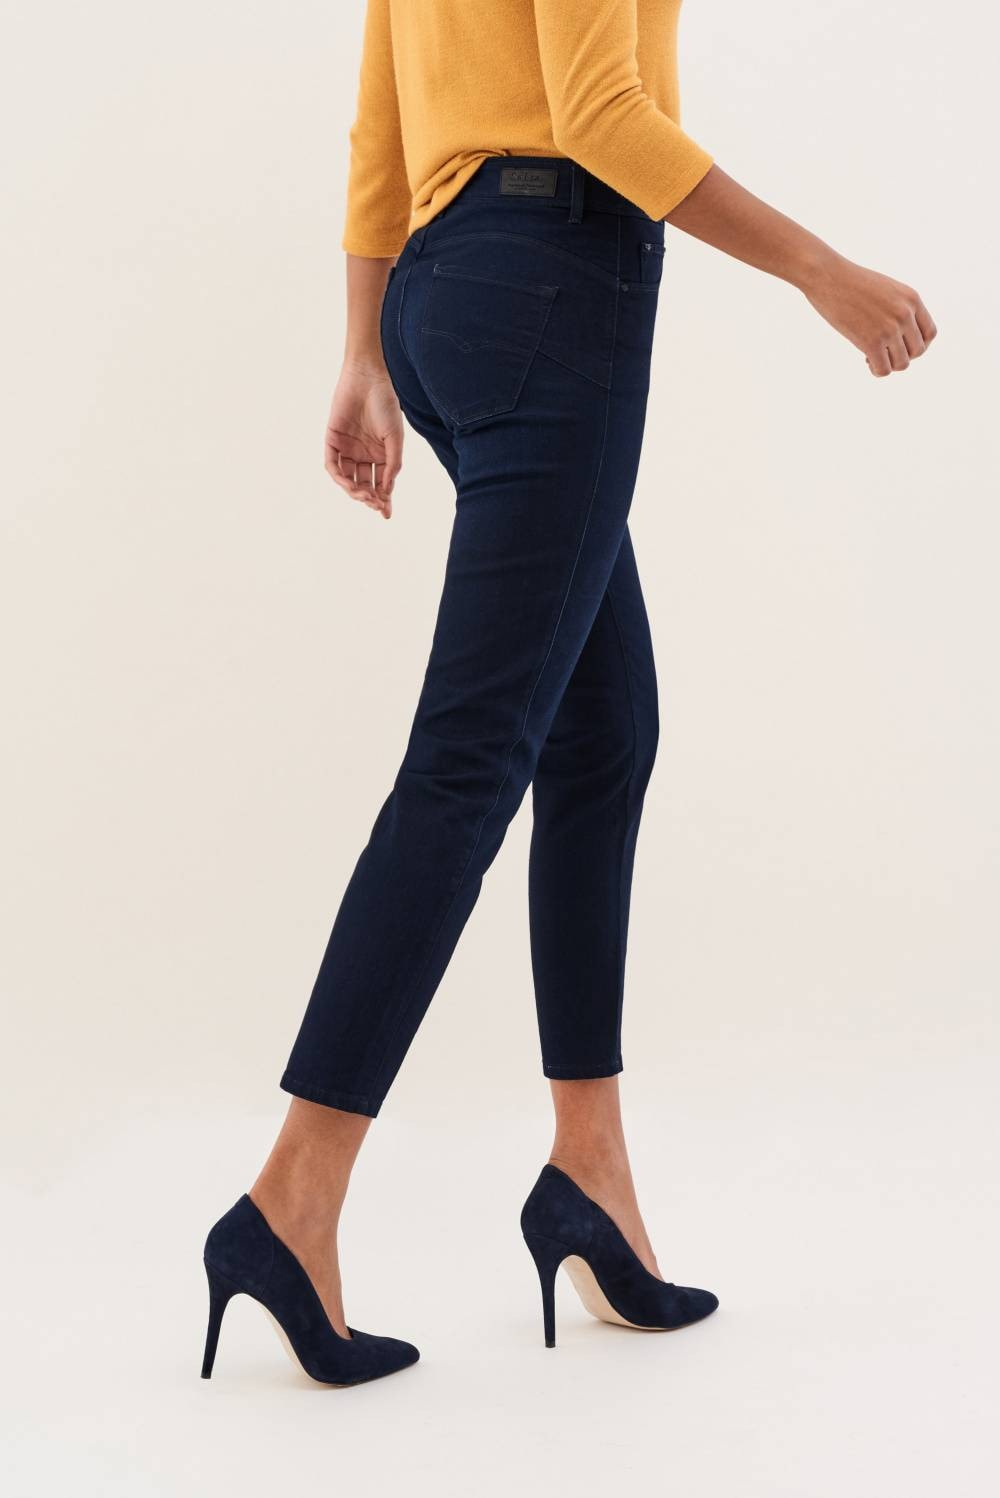 Jeans secret glamour push in capri em denim escuro - Salsa